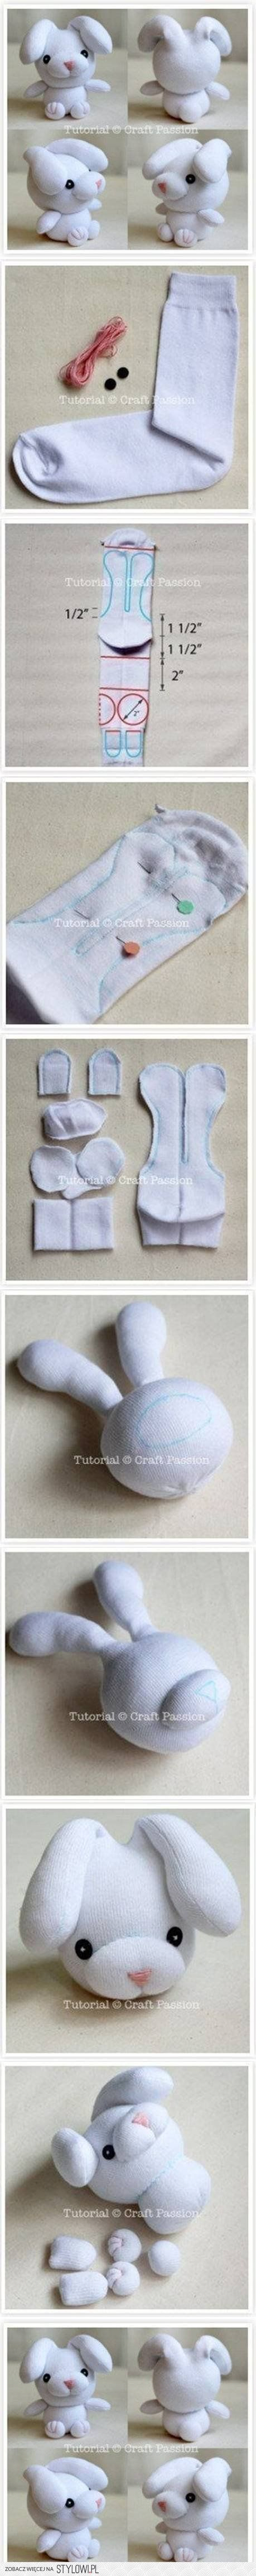 DIY Sew Sock Bunny DIY Projects | UsefulDIY.com na Stylowi.pl